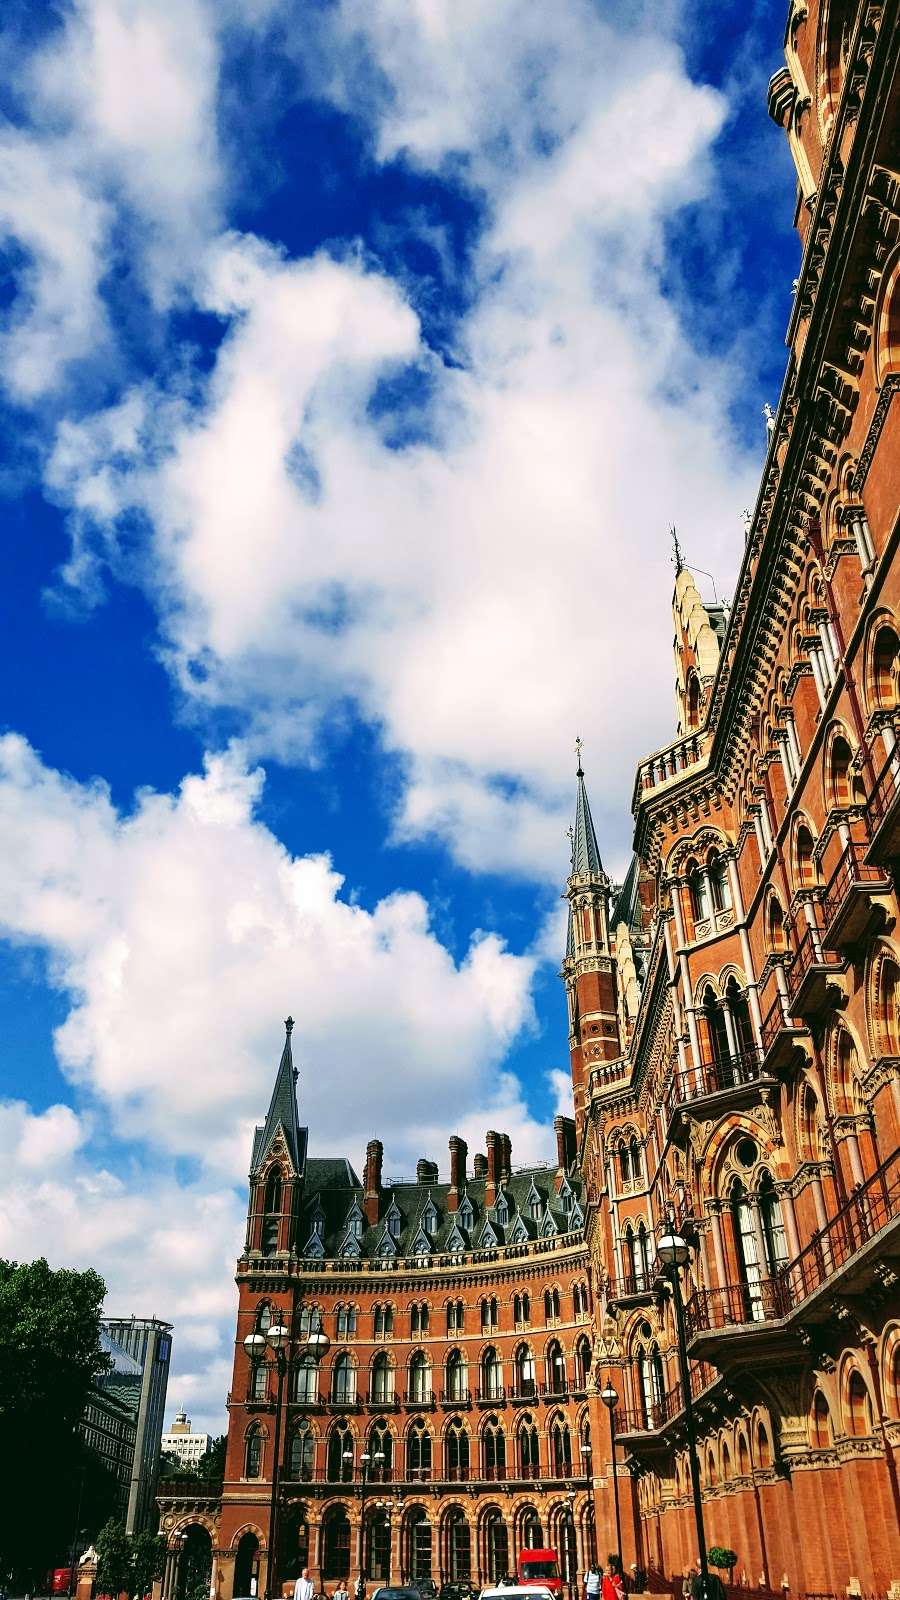 London St Pancras International Station